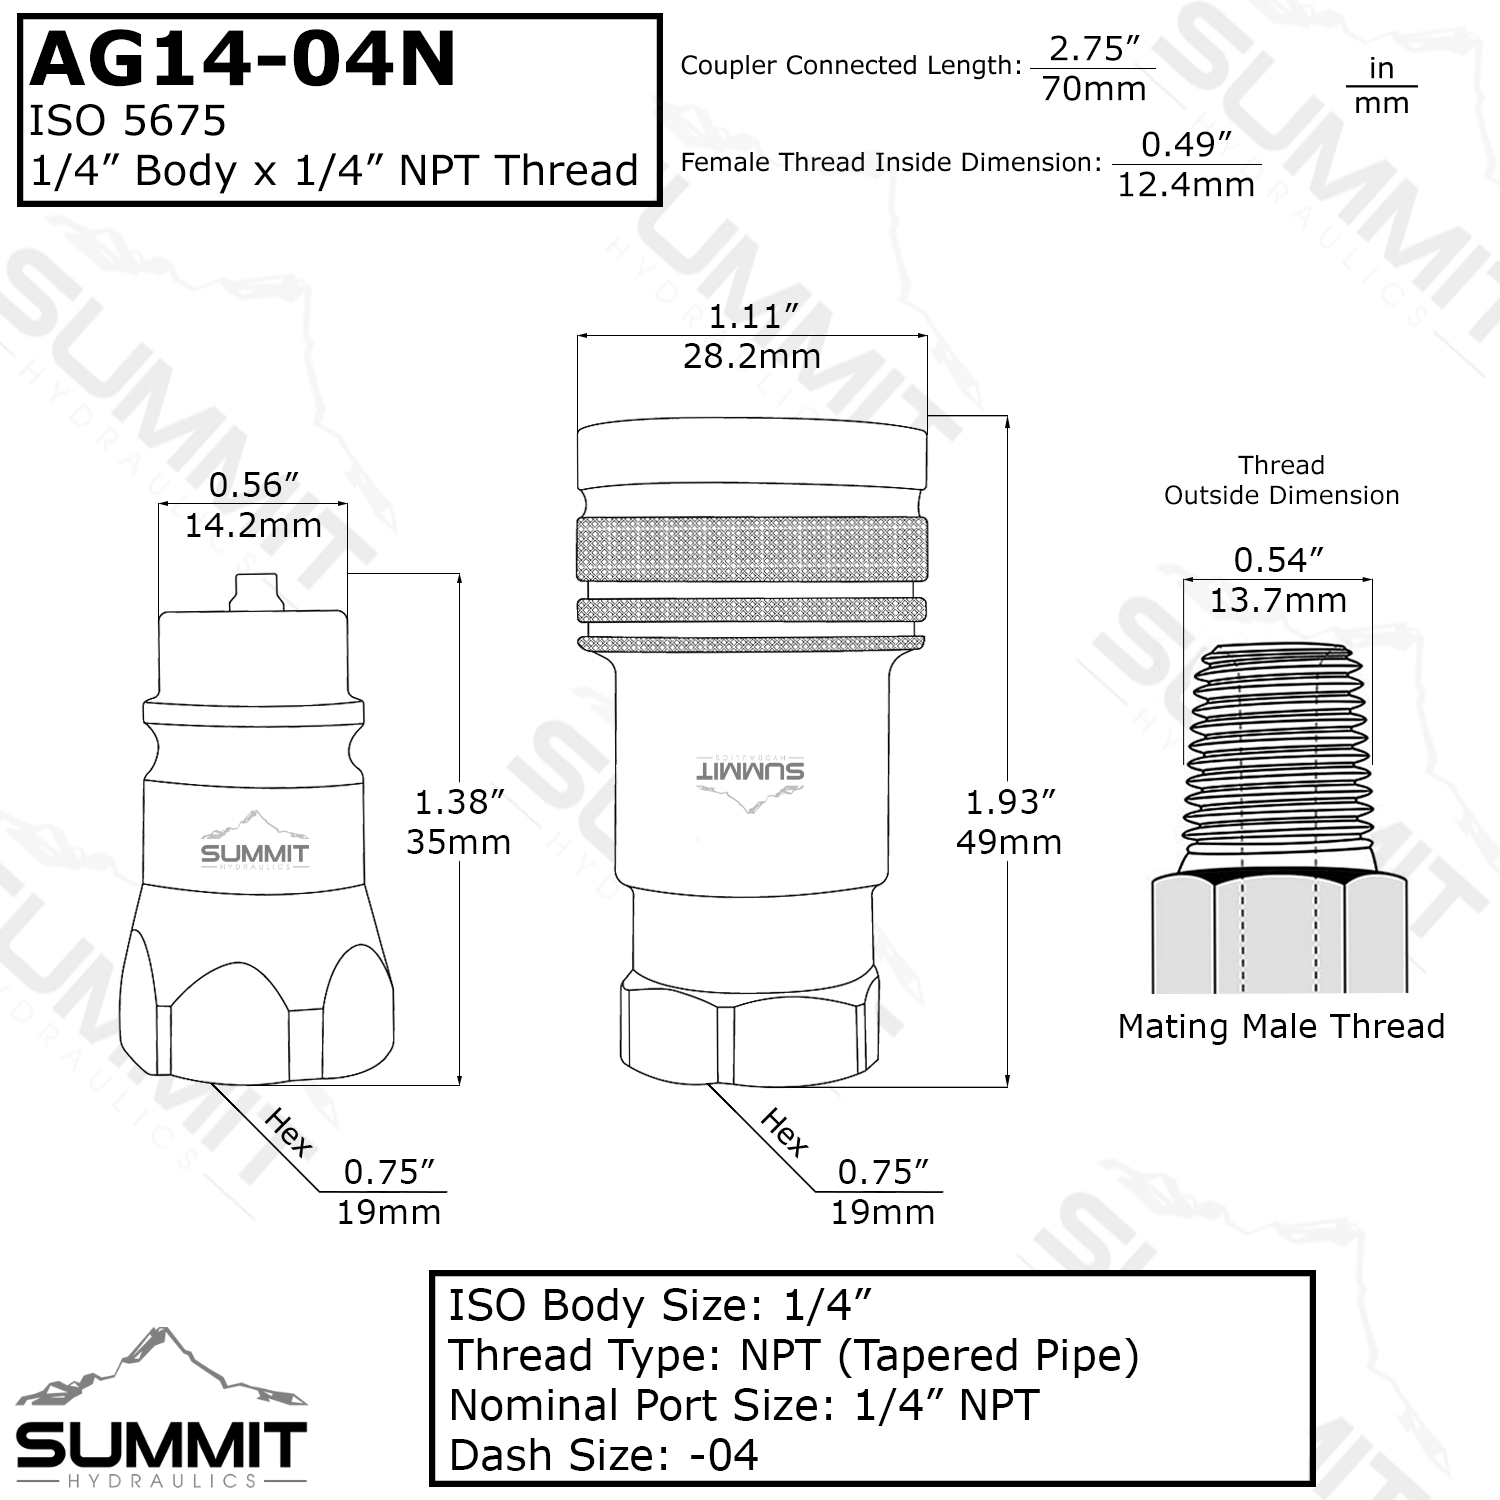 1 4 ag hydraulic quick connect coupler set 1 4 npt thread iso 5675 series